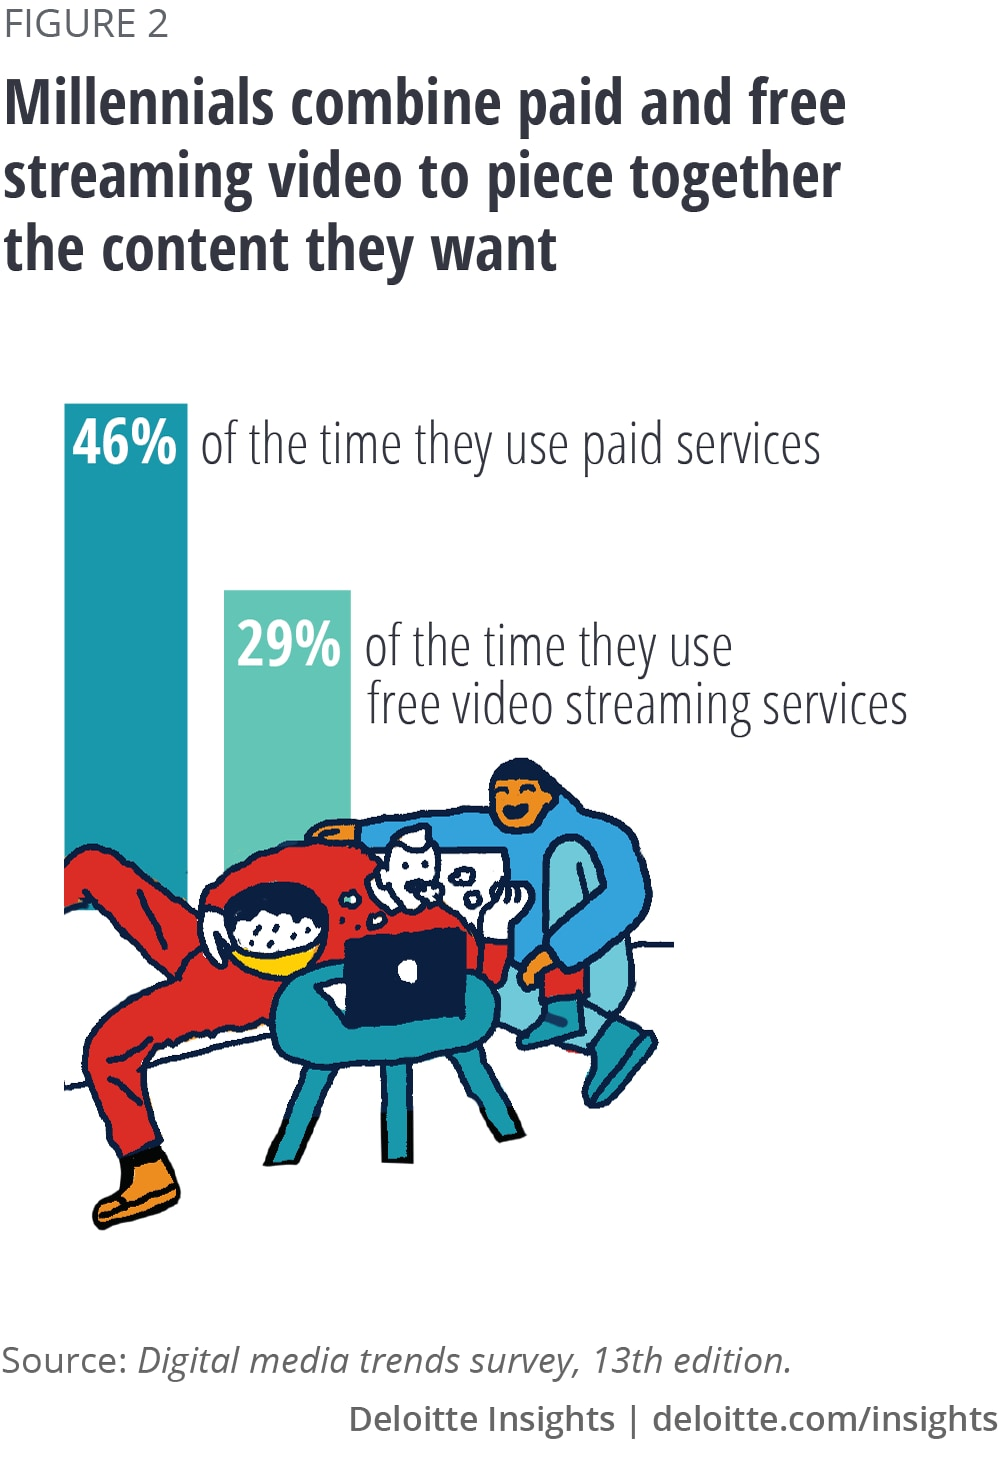 Millennials combine paid and free streaming video to piece together the content they want